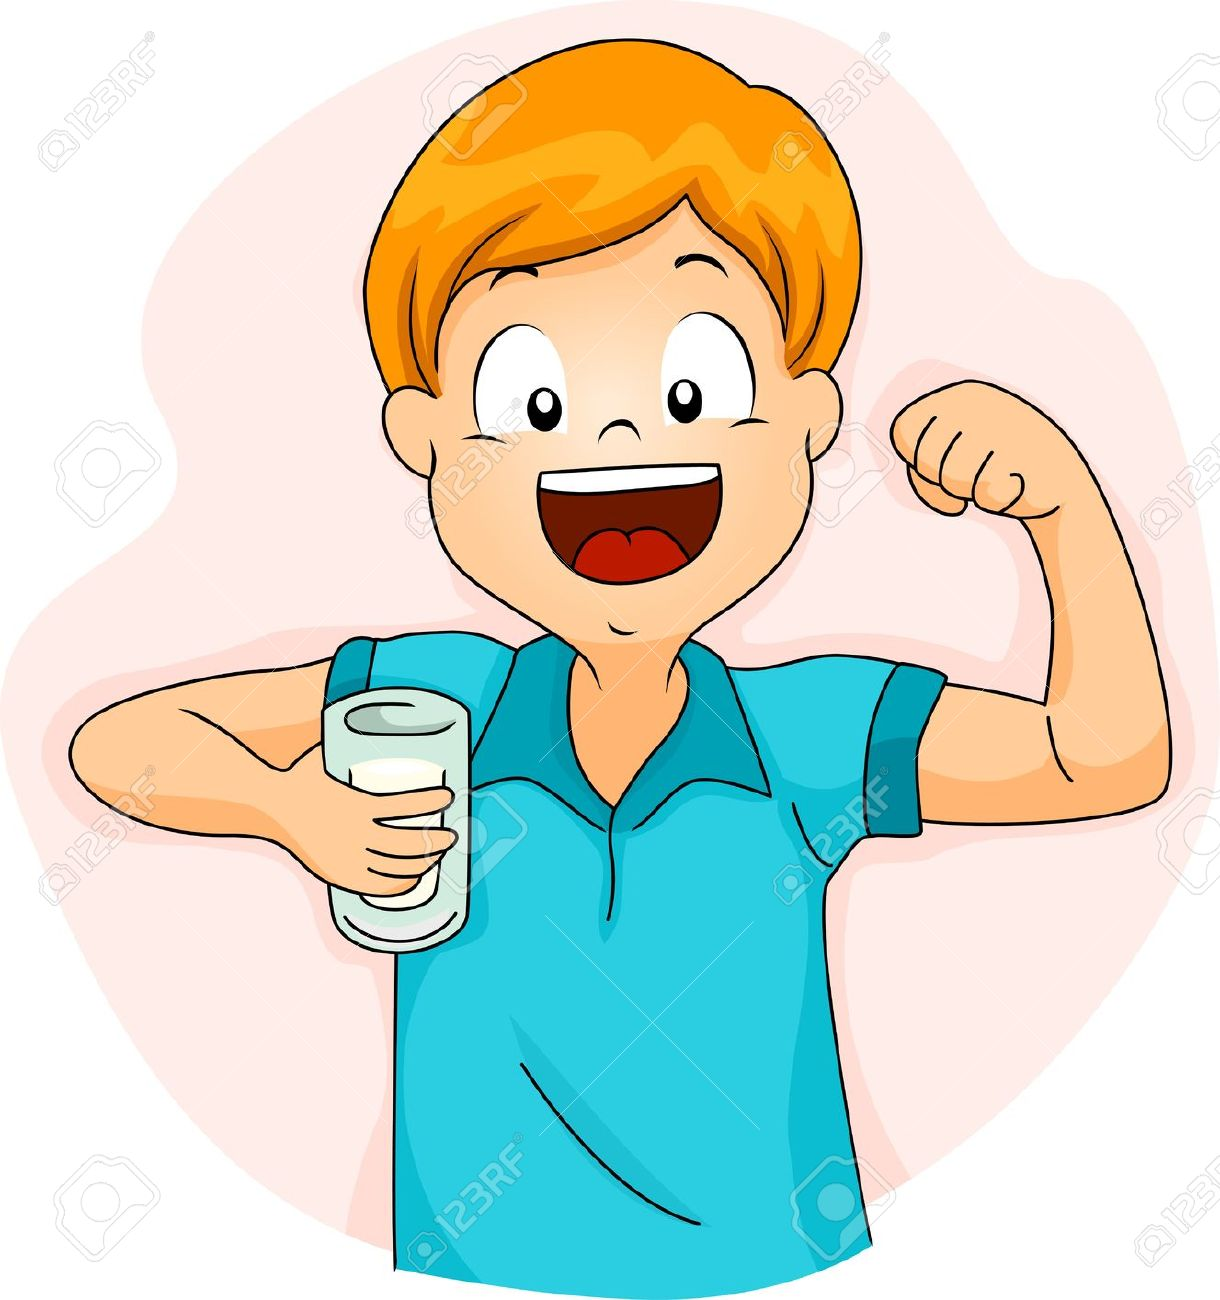 Drink clipart kid drink About Clipart clipart  Clipart